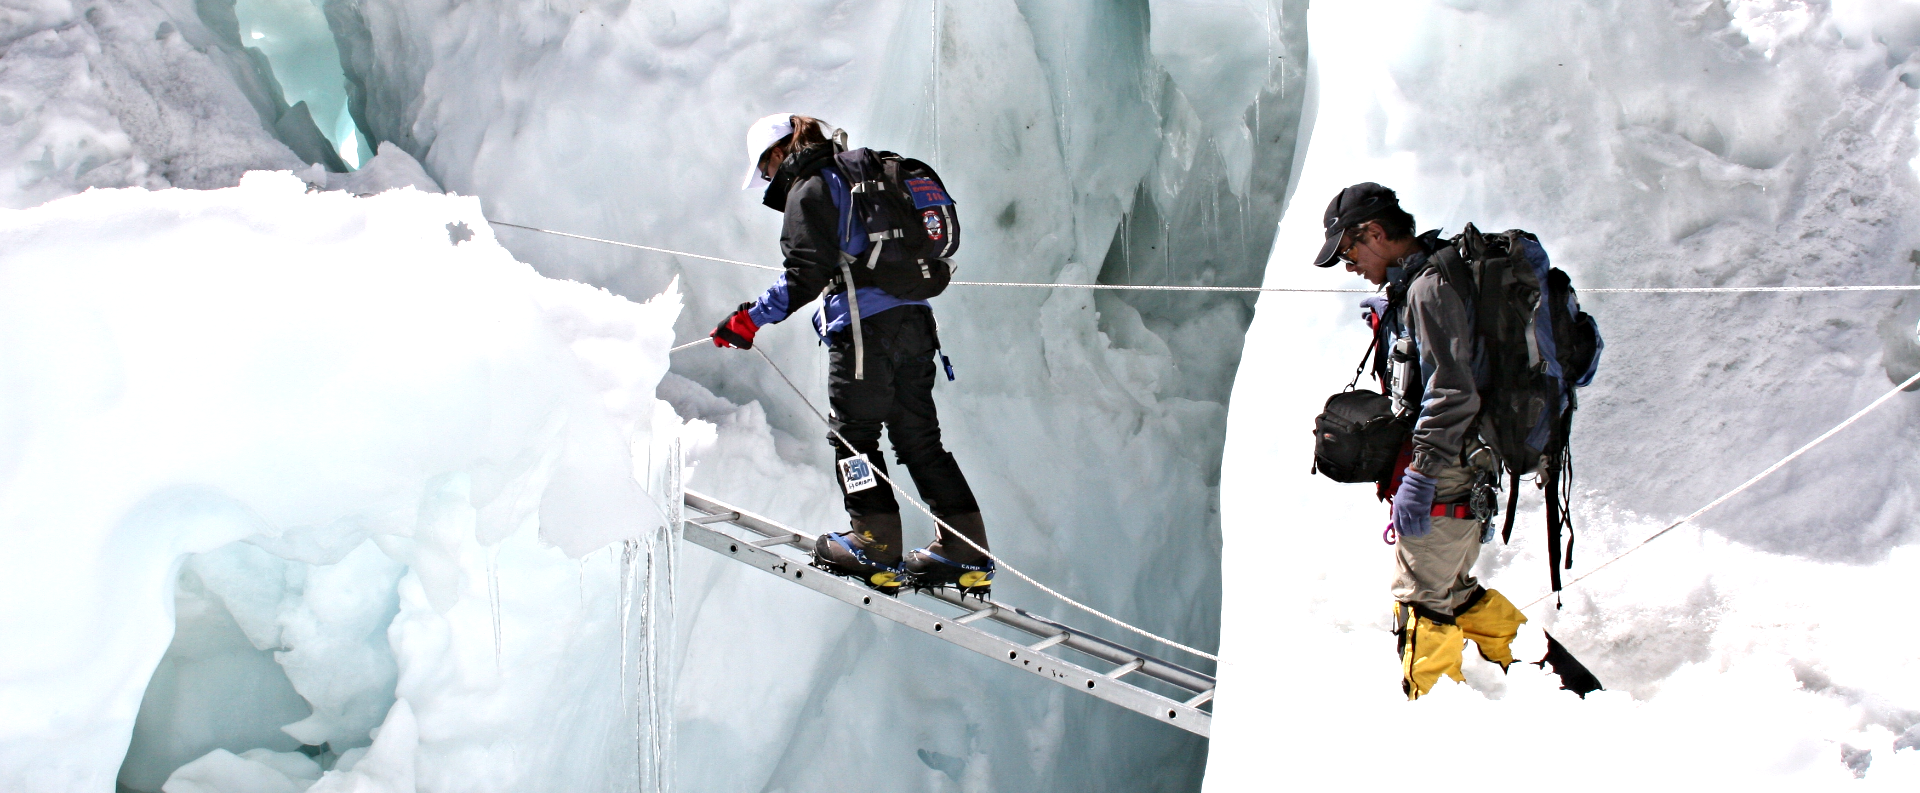 CROSSING ICEFALL